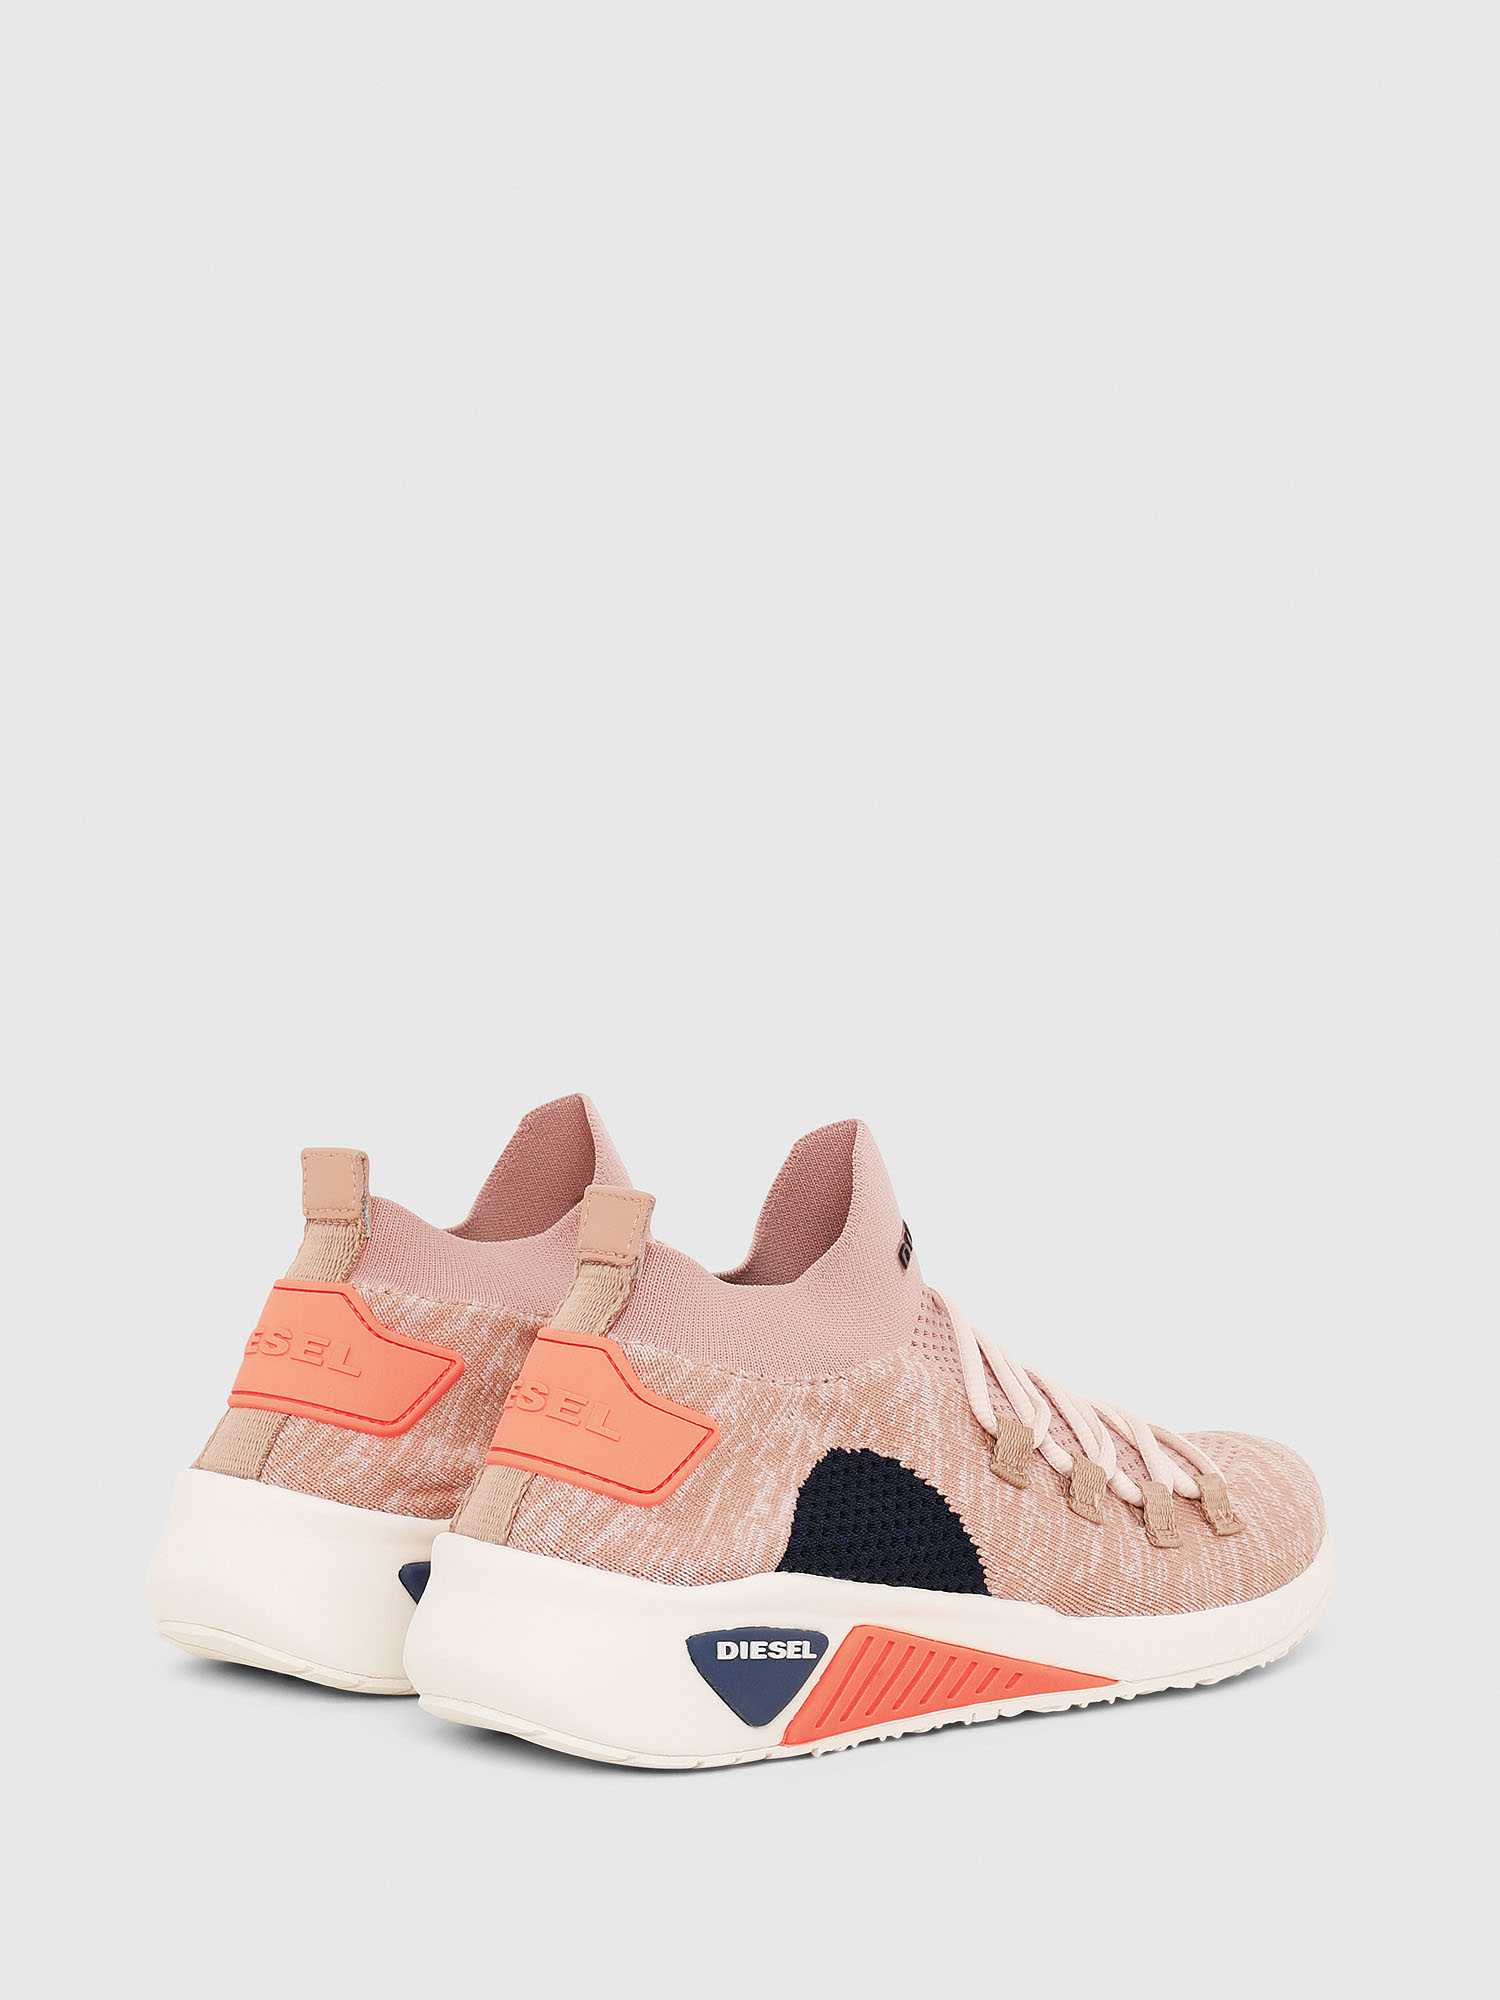 Diesel - S-KB ATHL LACE W,  - Sneakers - Image 3